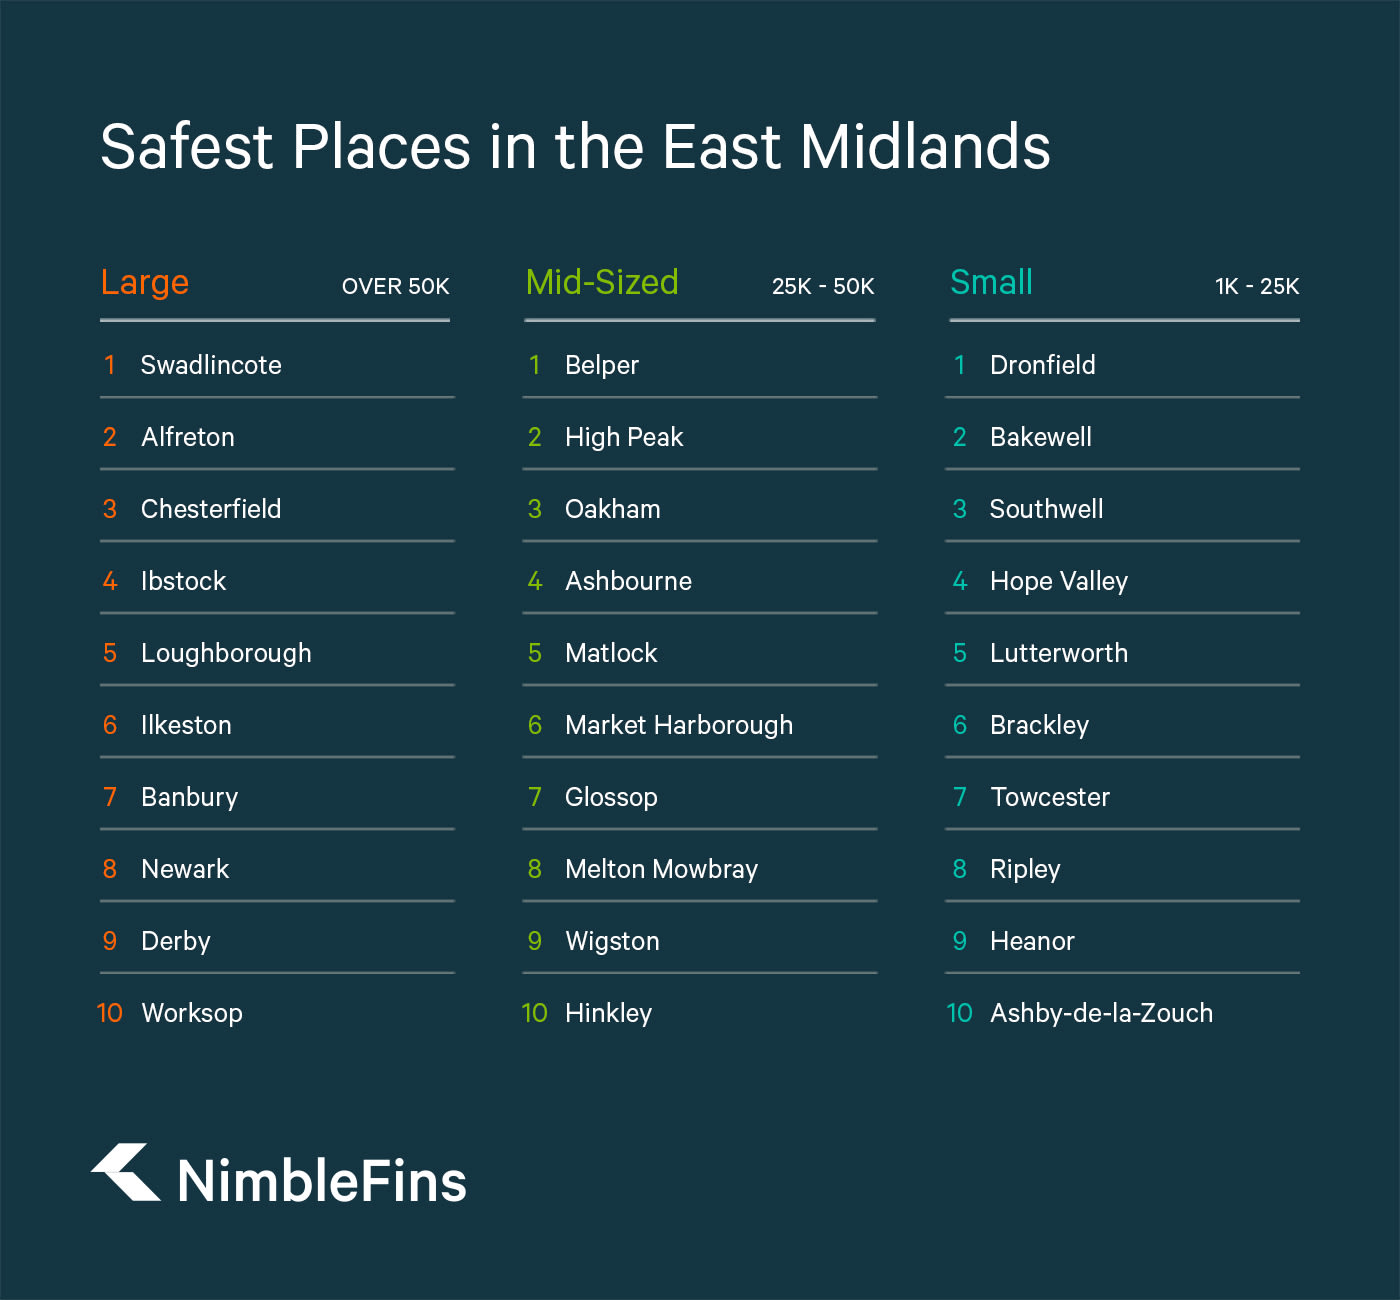 table showing safest towns in the East Midlands, UK, by small, medium and large towns